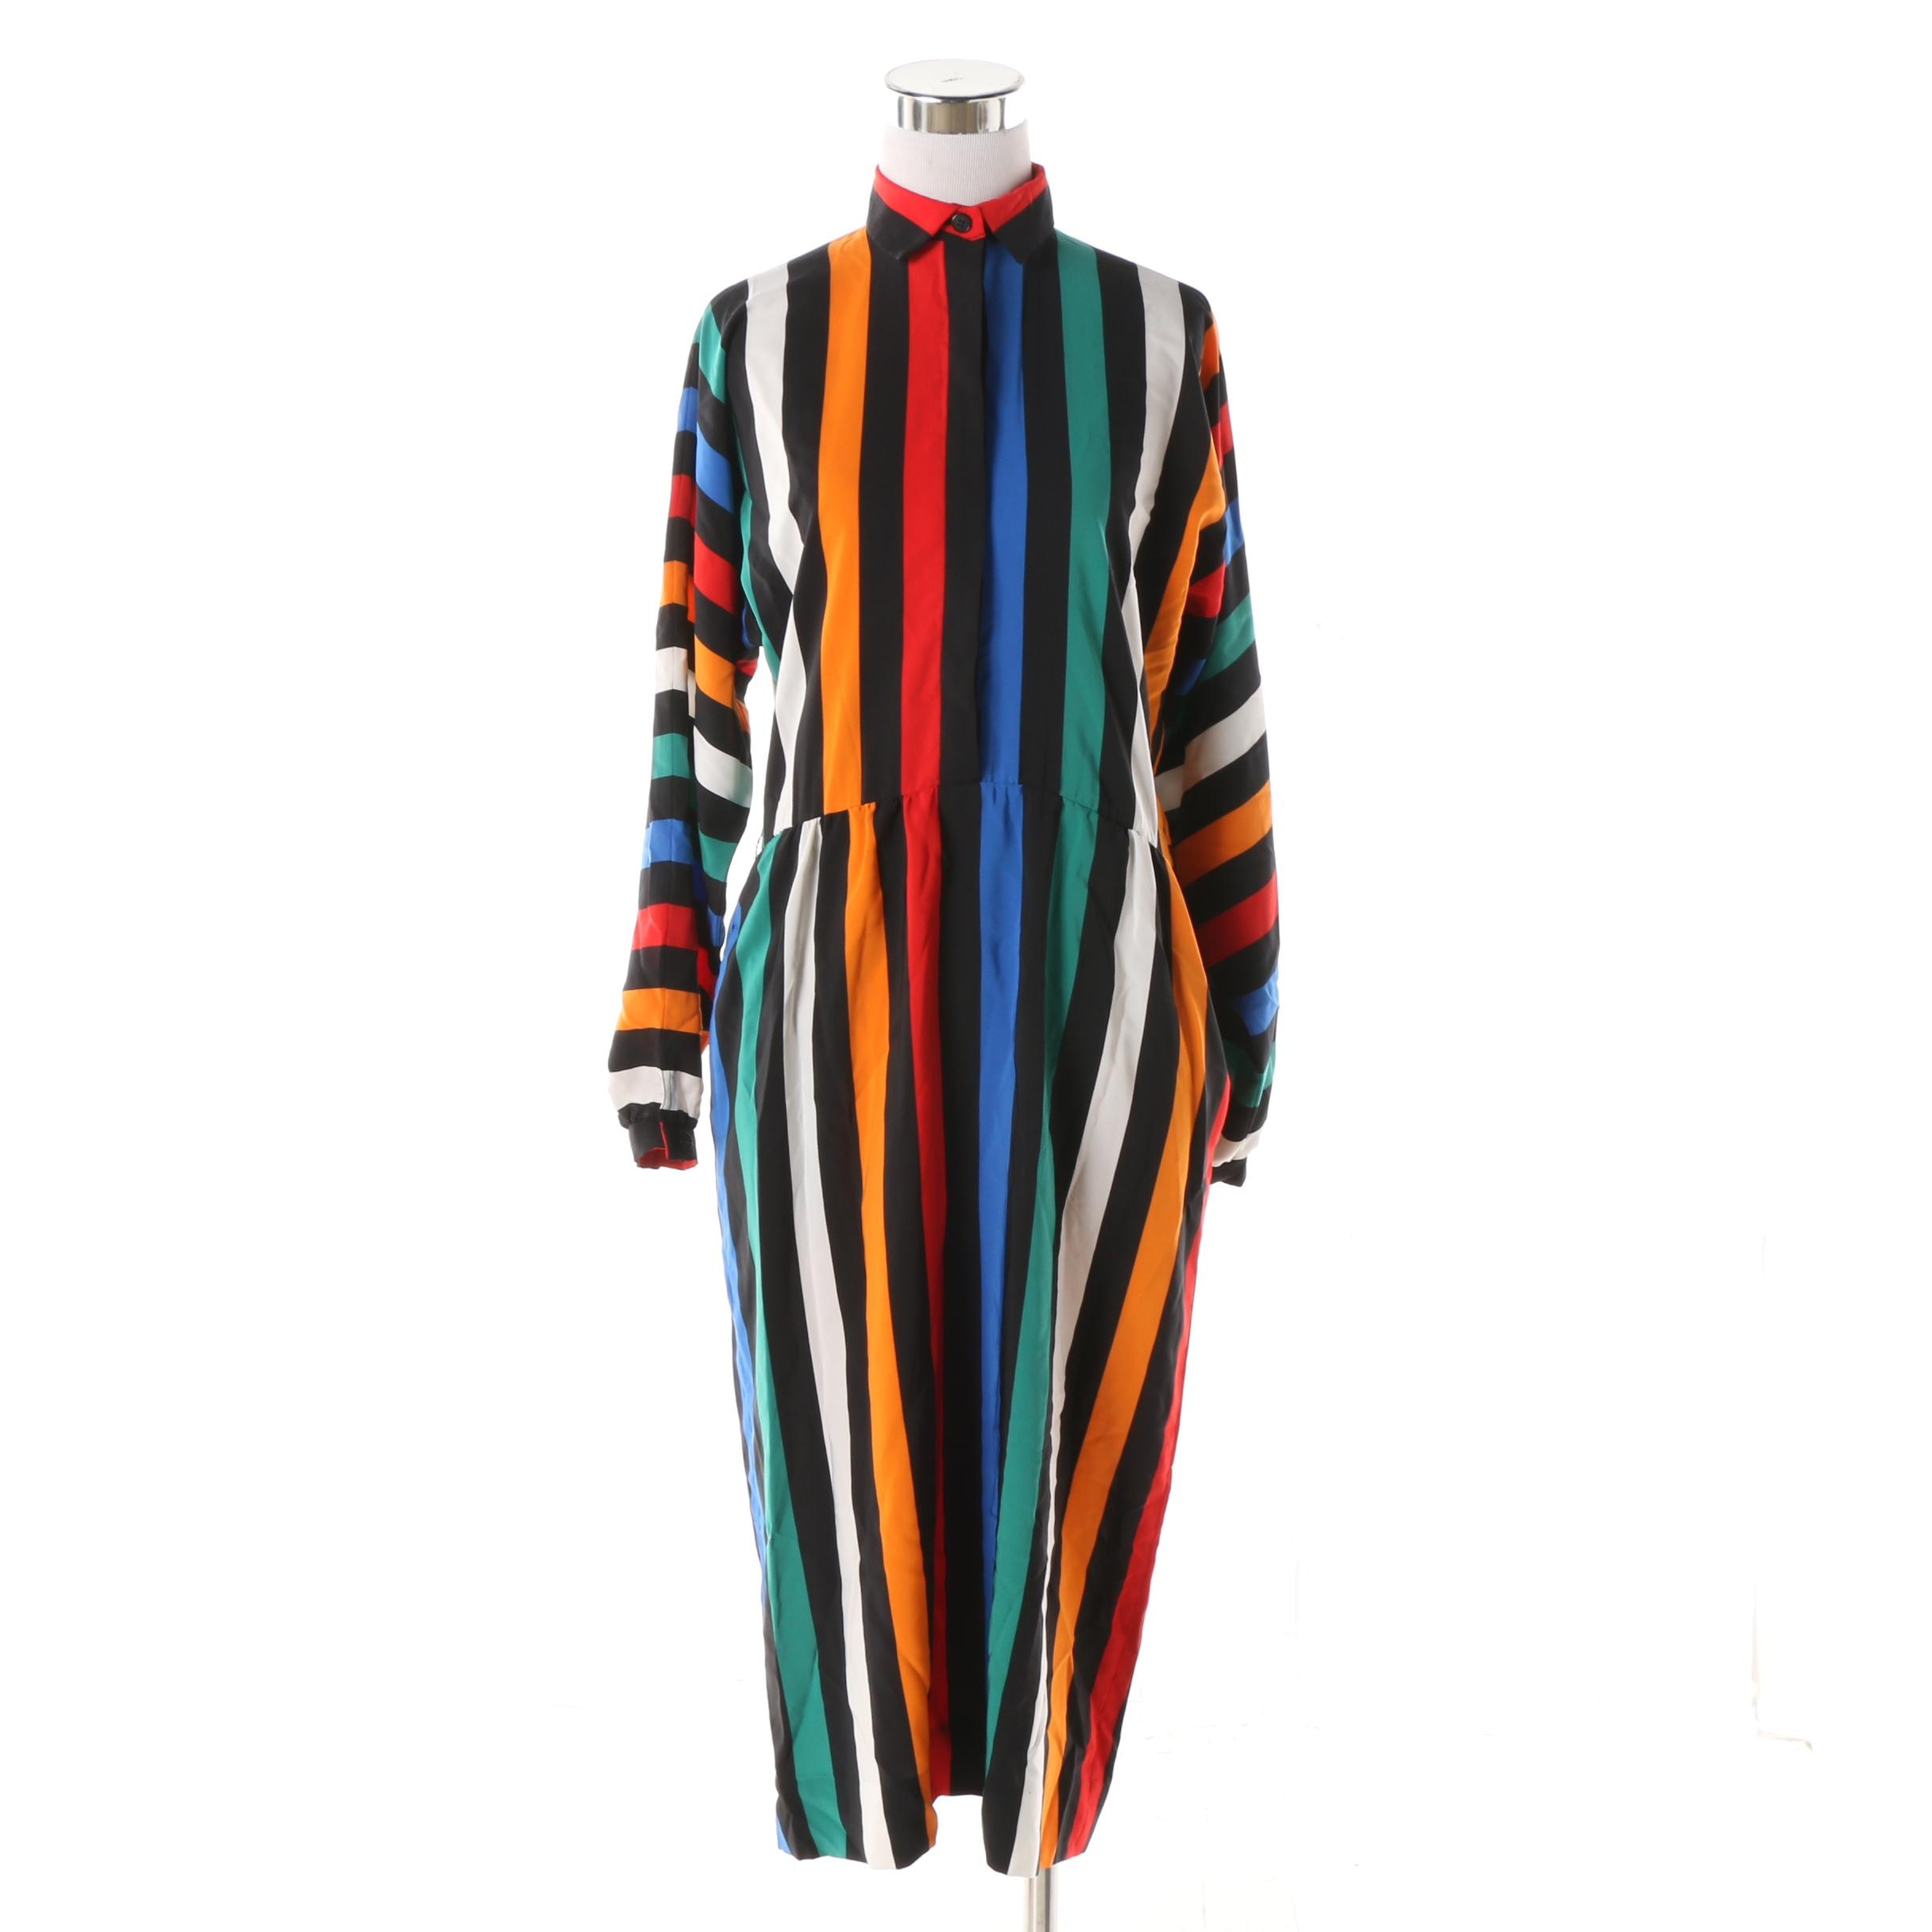 Women's Multicolor Striped Shirt Dress, Made in Japan